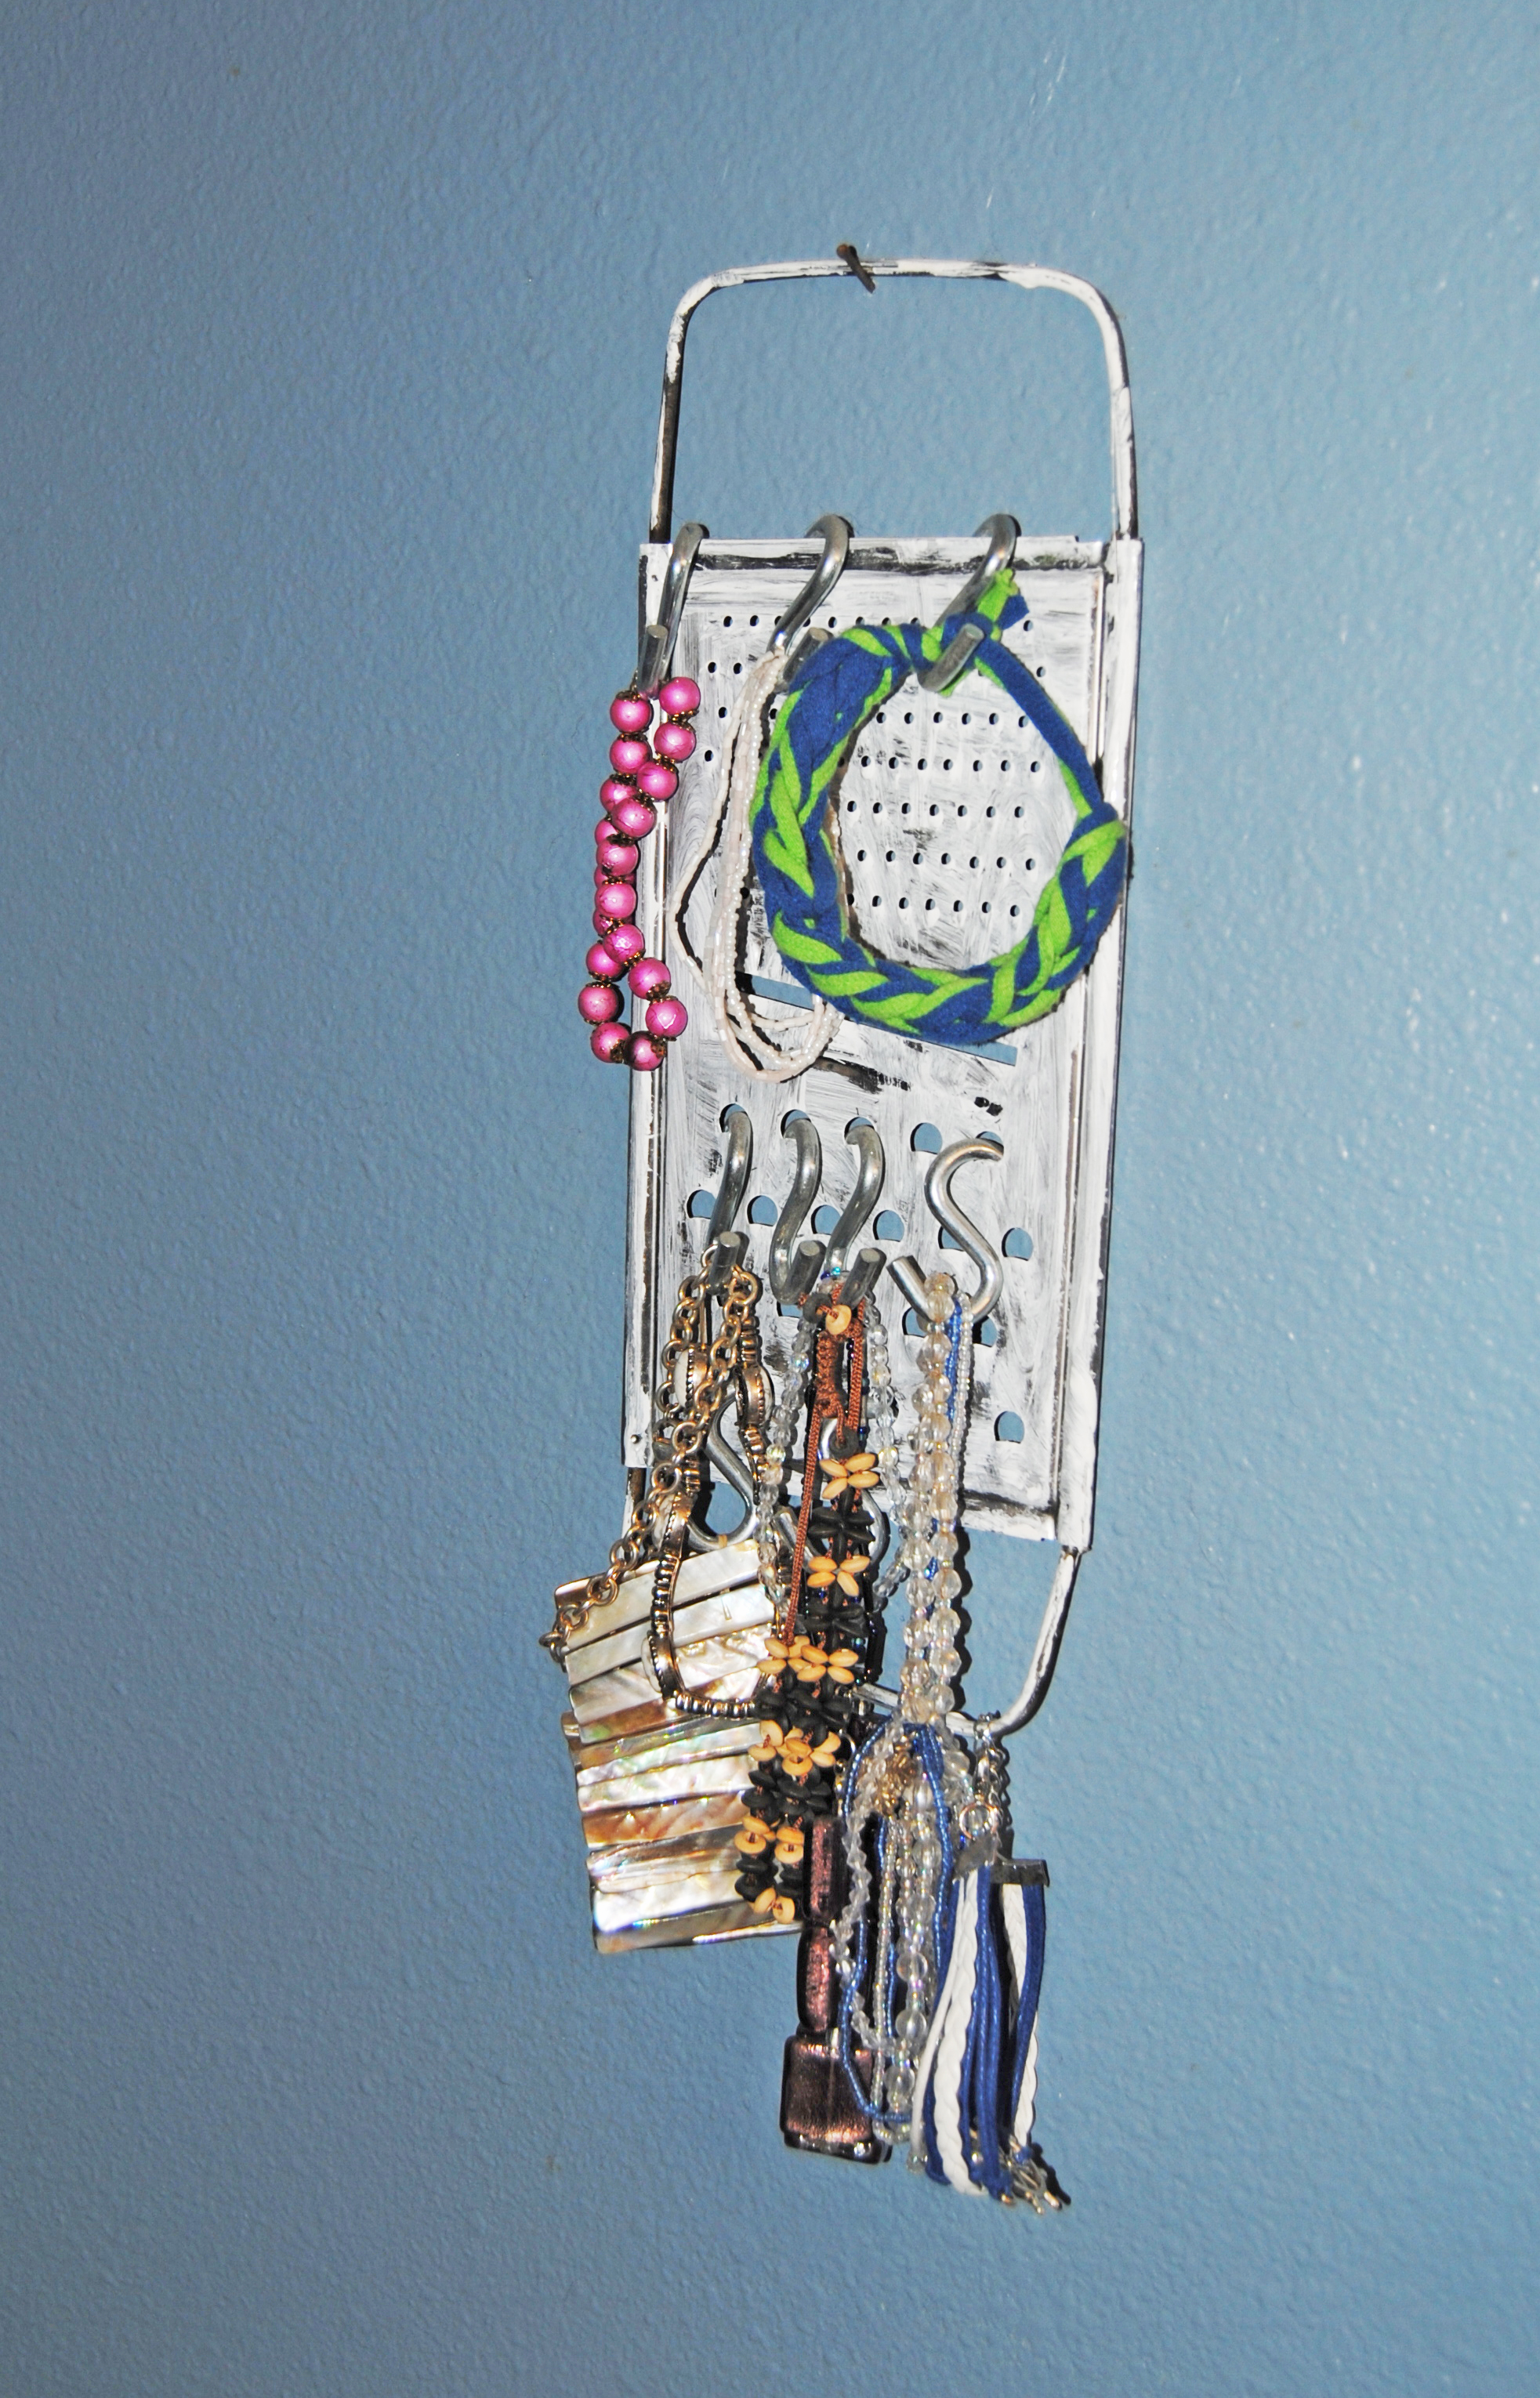 Cheese Grater Jewelry Holder | Bexbernard.com DIY - Green Living - Upcycled - Recycled - Crafts